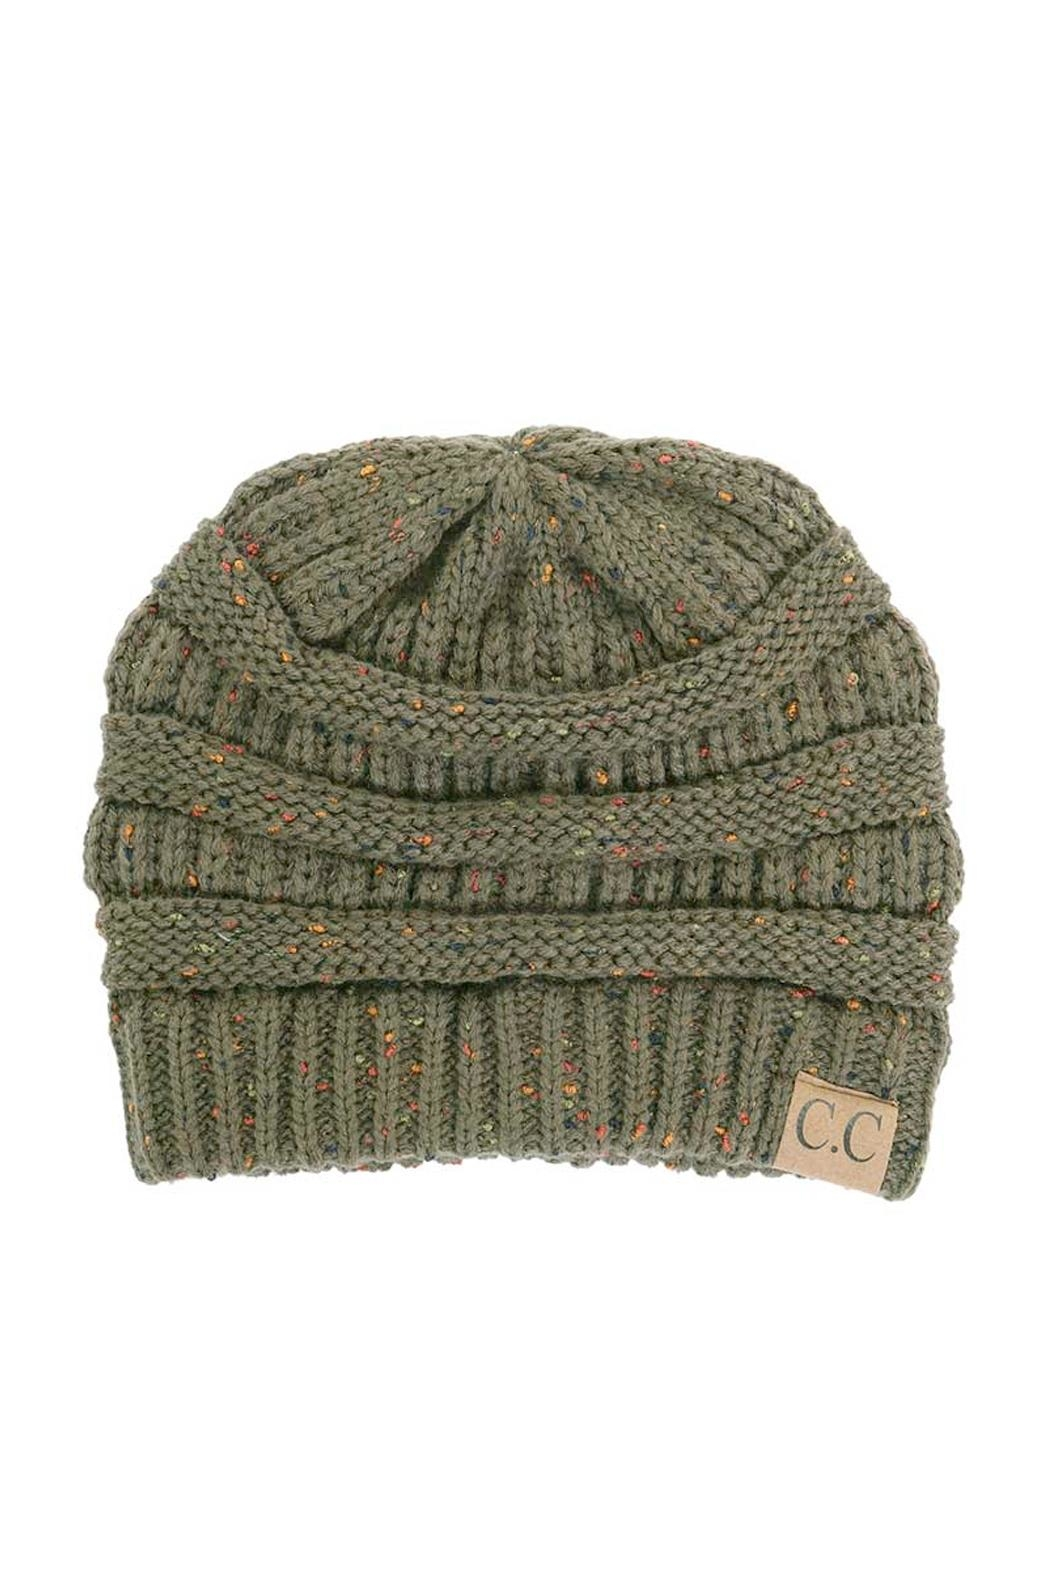 C.C Beanie Cable Knit Hat from Minneapolis by StyleTrolley — Shoptiques b3d42f41bb7